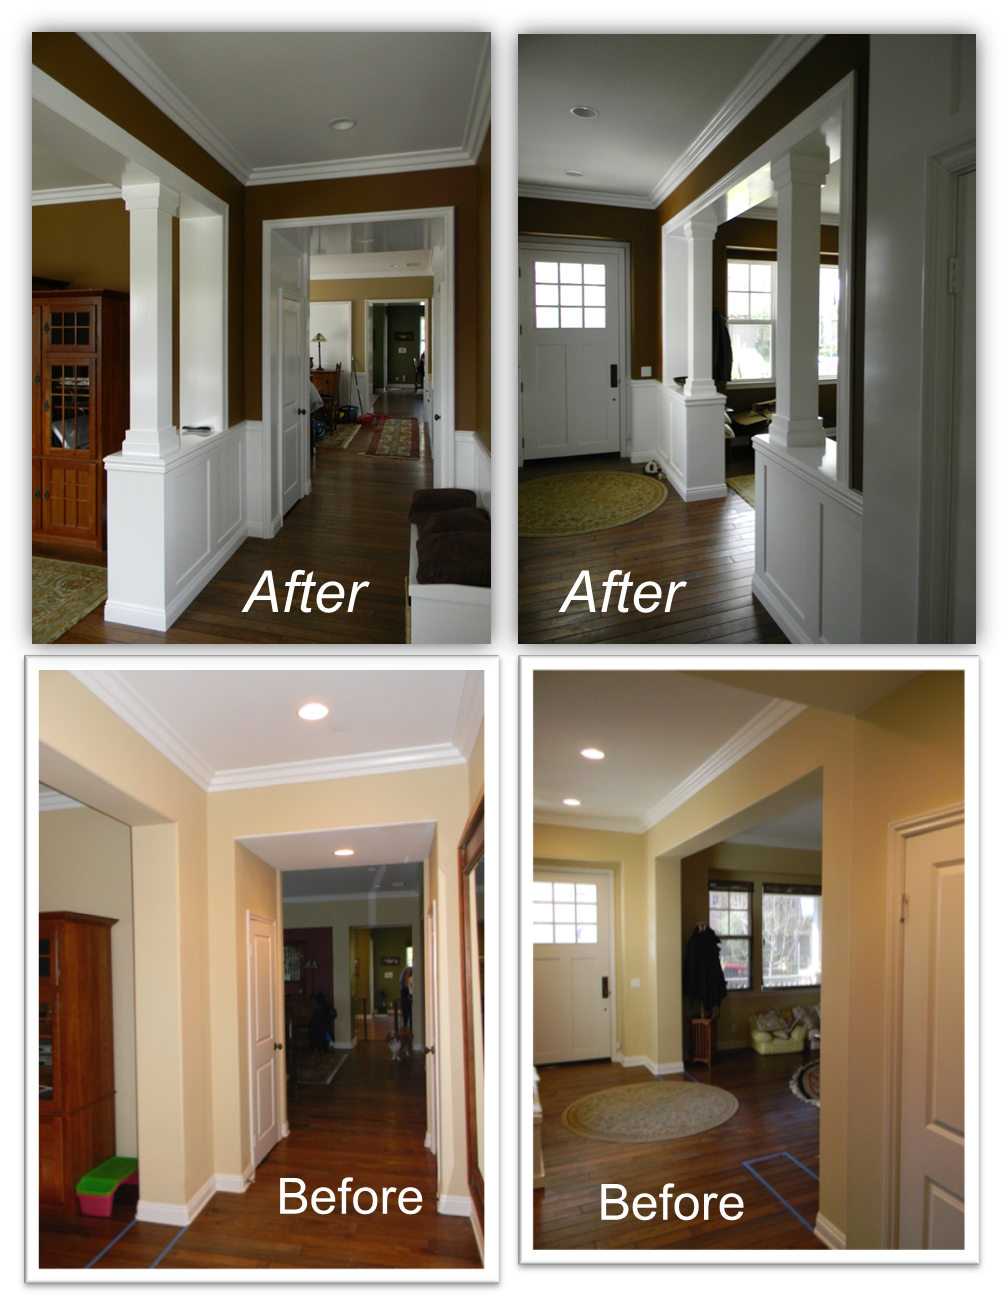 Traditional Entryway Ideas Trim Mouldings And Columns Added To Large Open Entryways Giving Plain Cookie Cutter Es A Unique Customized Feel